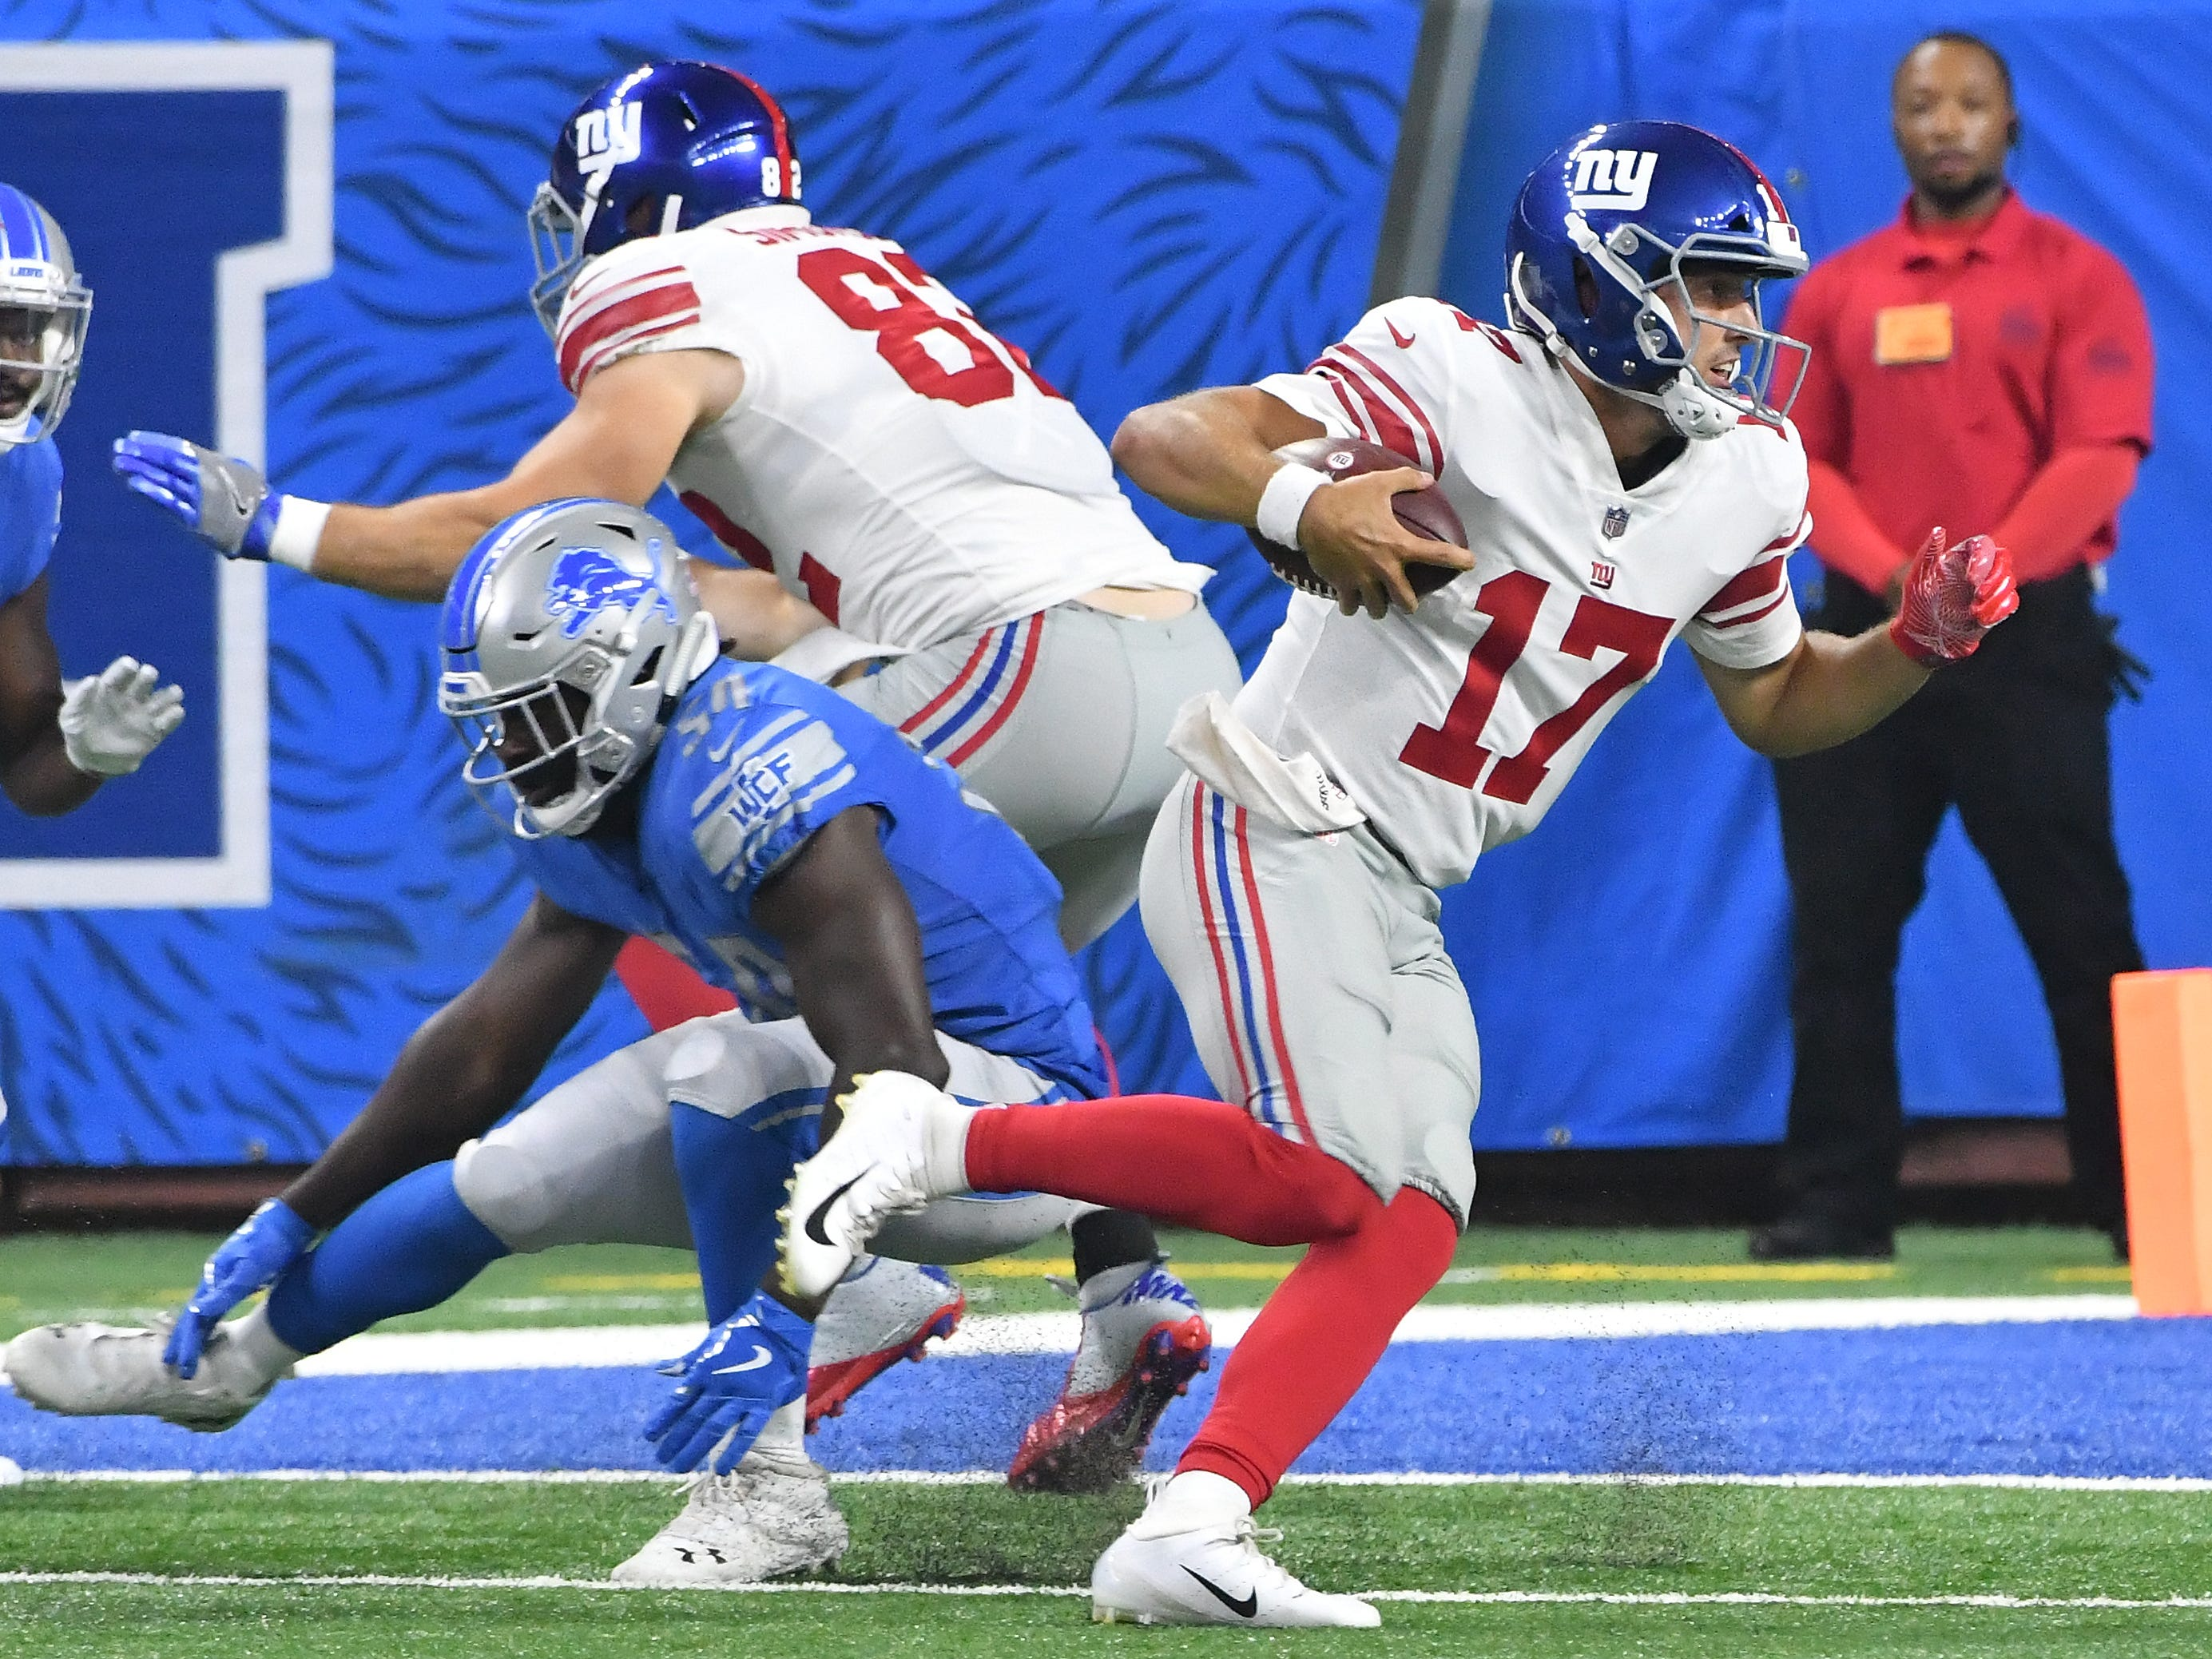 Giants quarterback Kyle Lauretta avoids several Lions defenders and goes into the end zone for a touchdown in the third quarter.